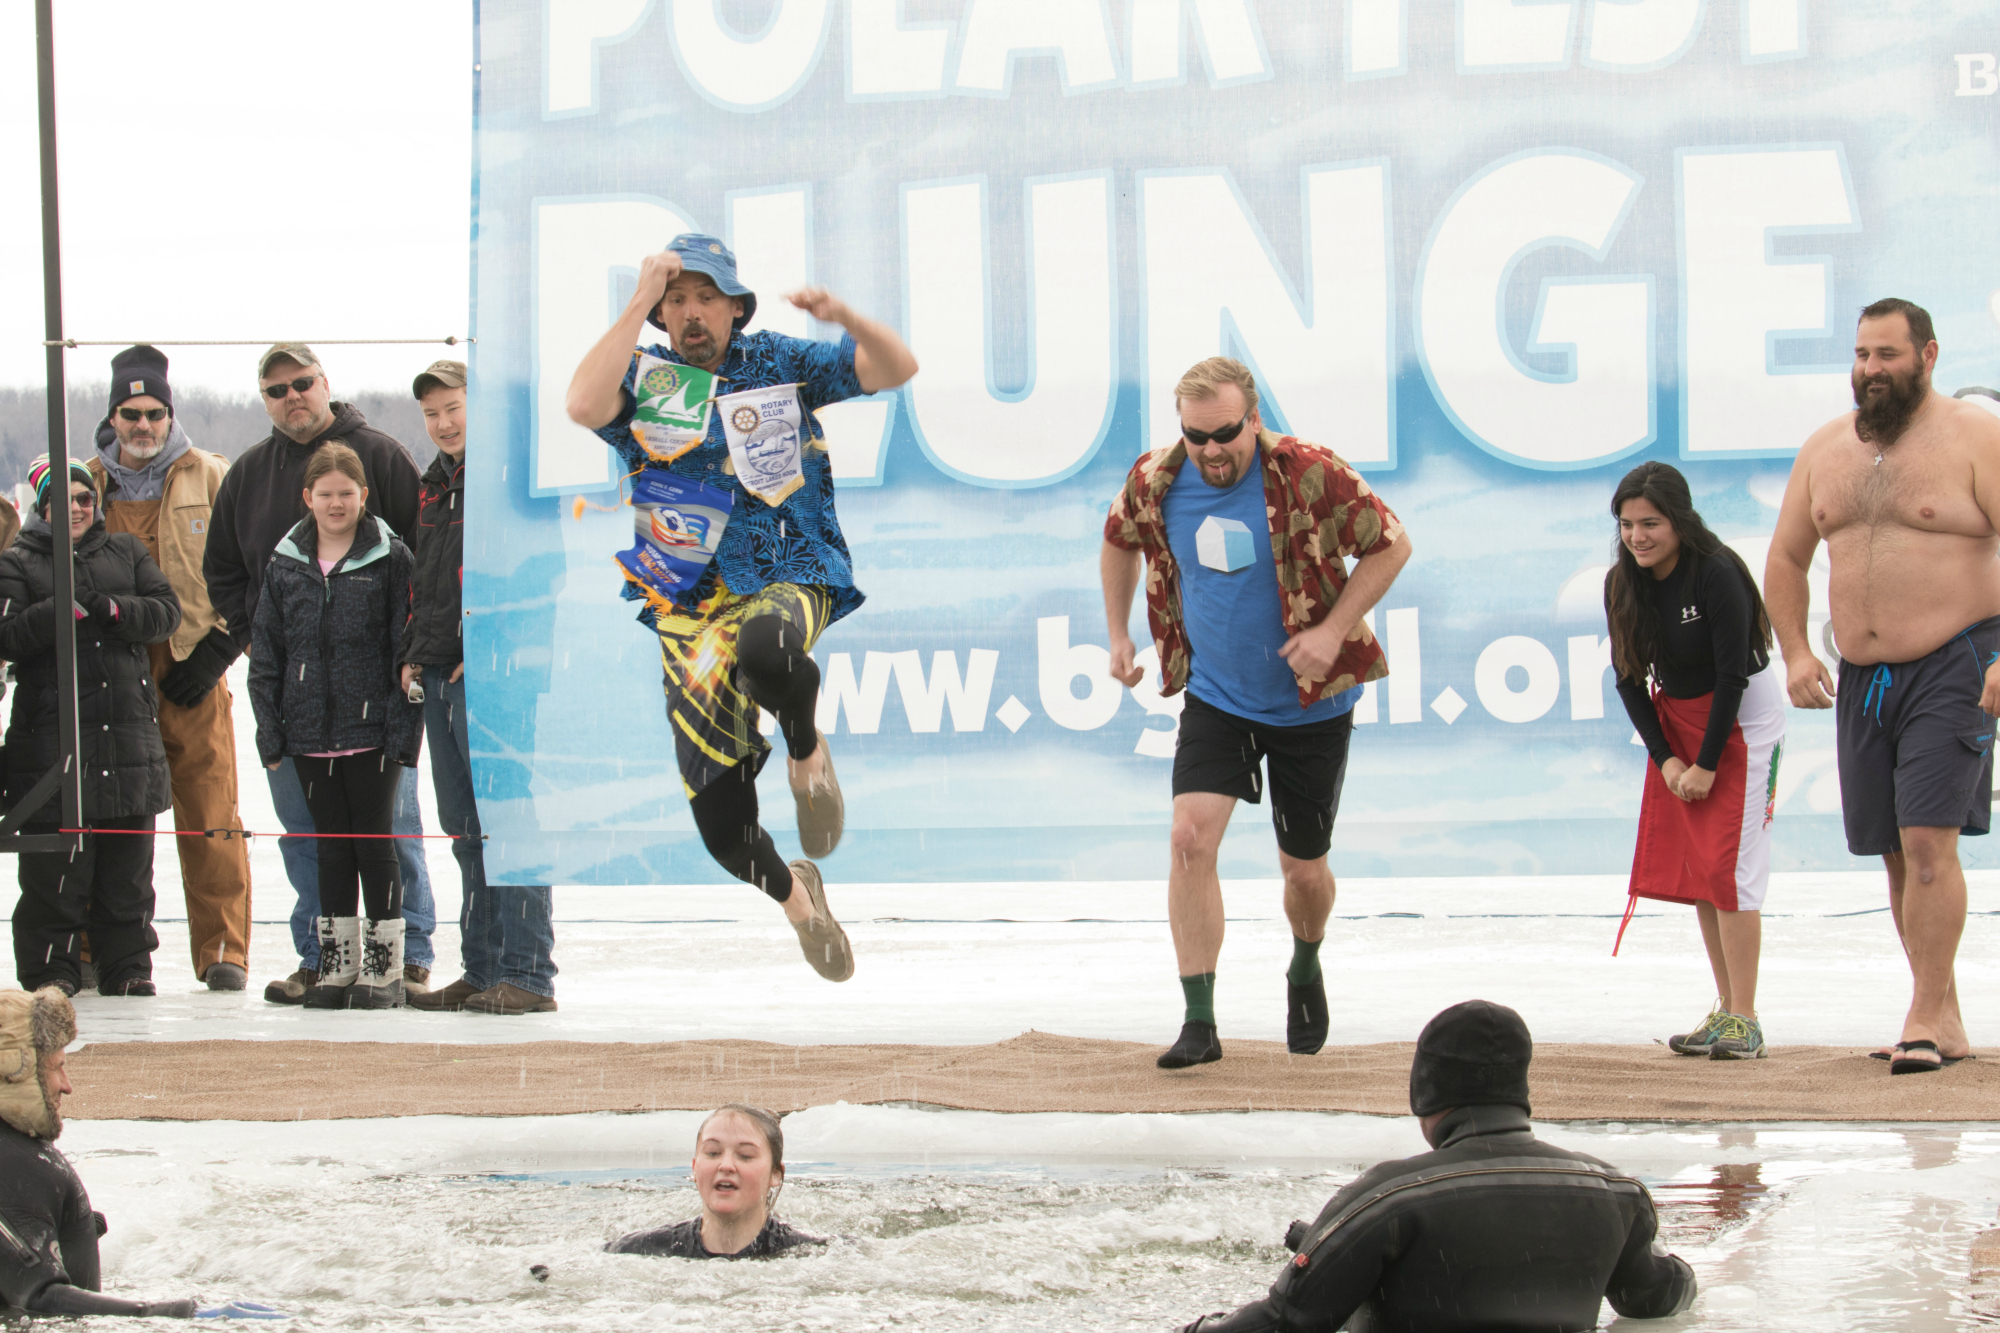 Polar Plunge - Take an icy dip for a good cause